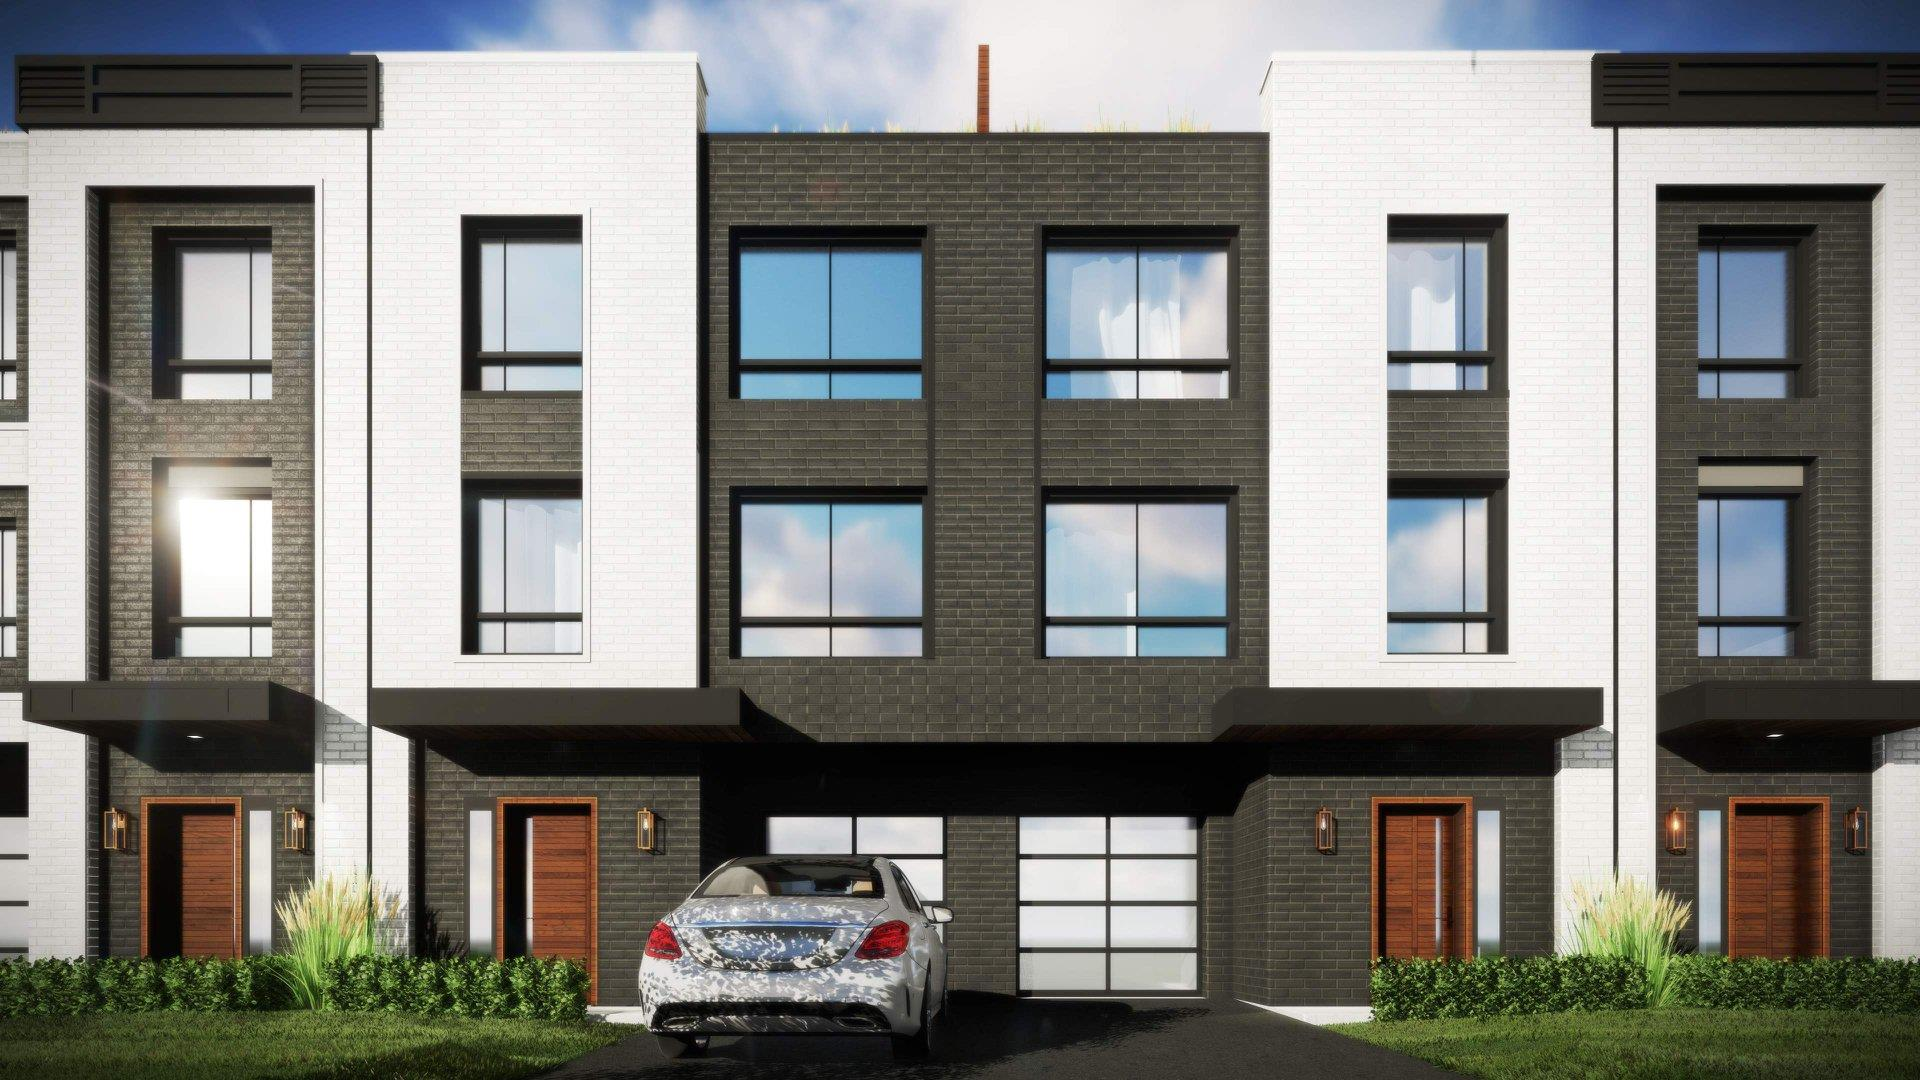 Rendering of Glendor Towns partial exterior with car in driveway.